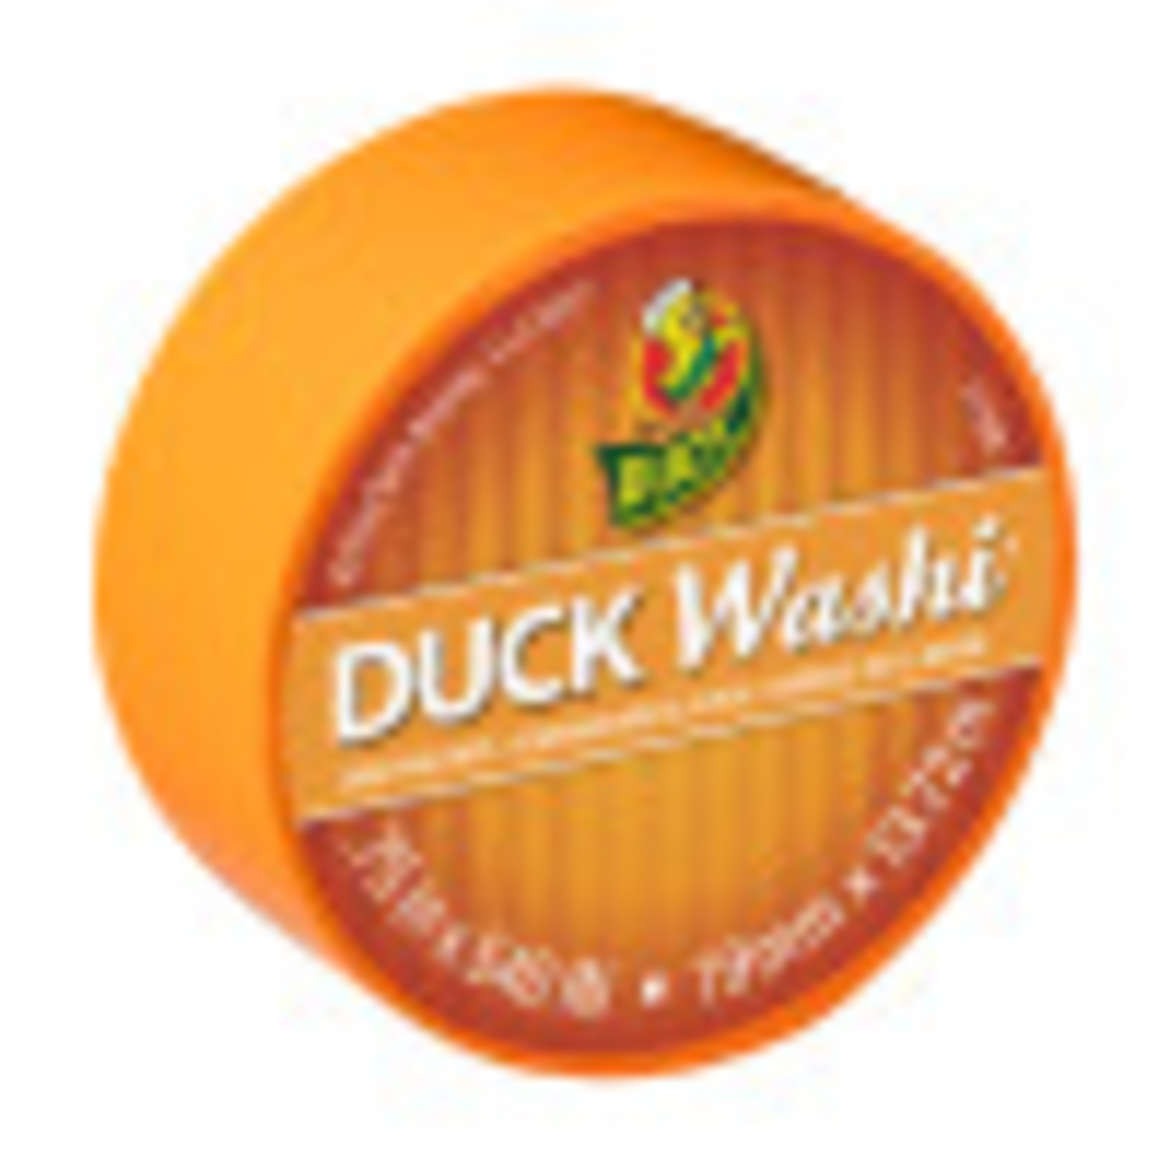 Duck Washi® Crafting Tape - Tangerine, 0.75 in. X 15 yd. Image